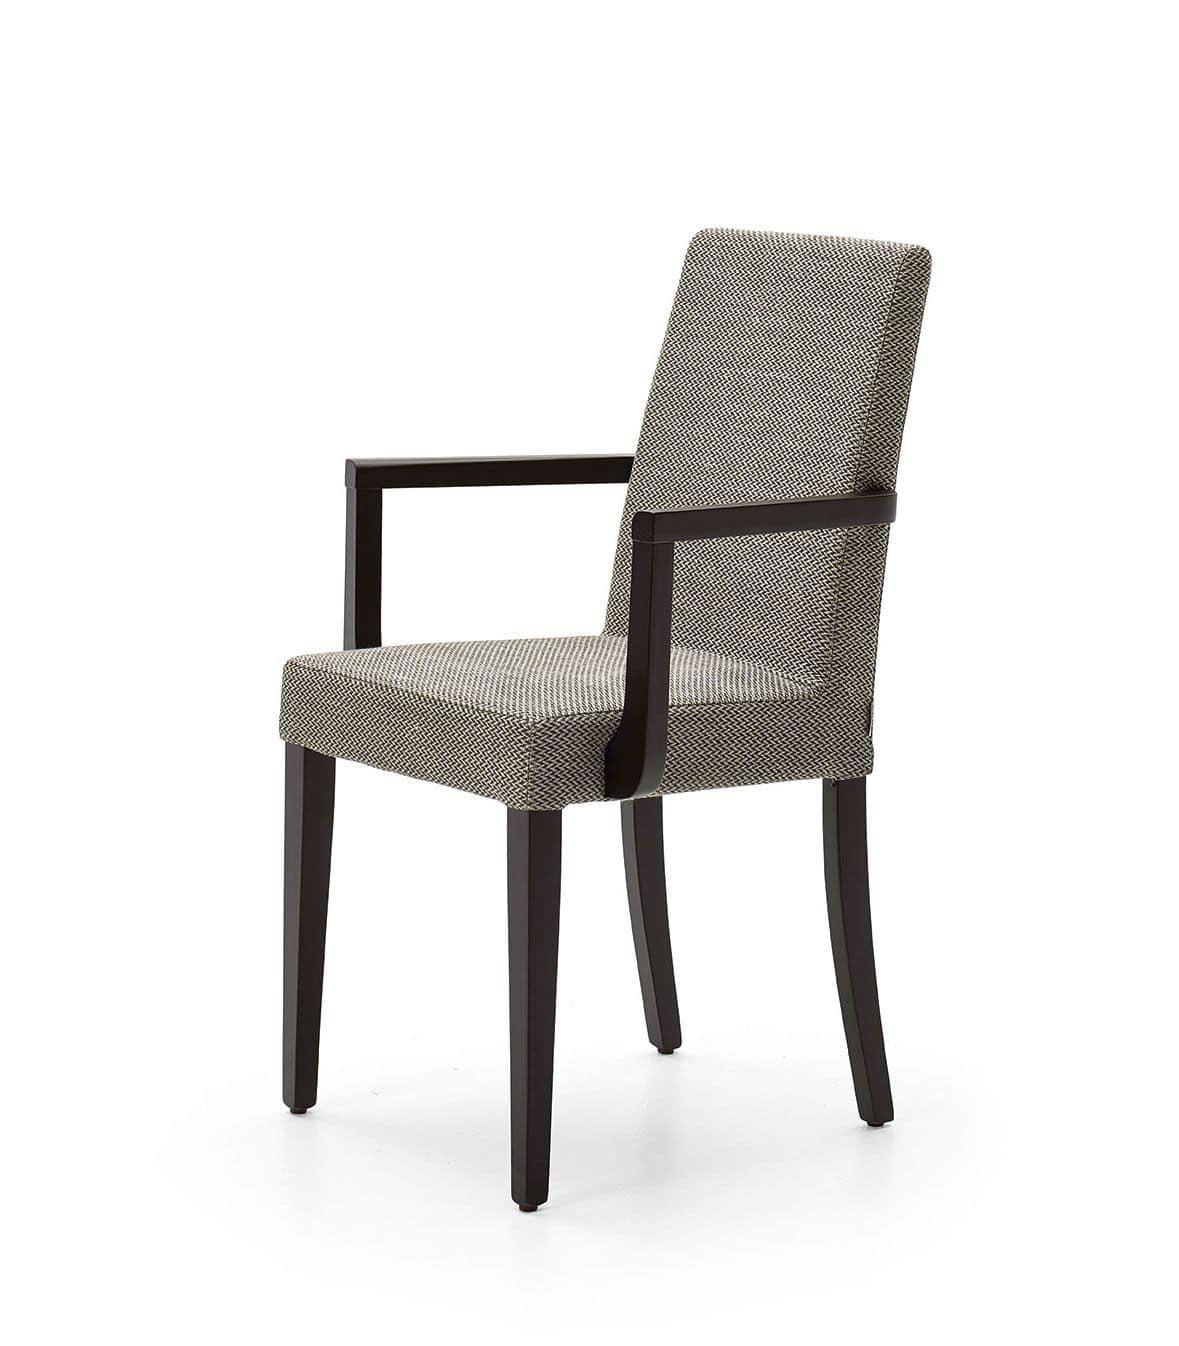 Oversized Dining Chair Upholstered Chair With Armrests For Dining Room Idfdesign